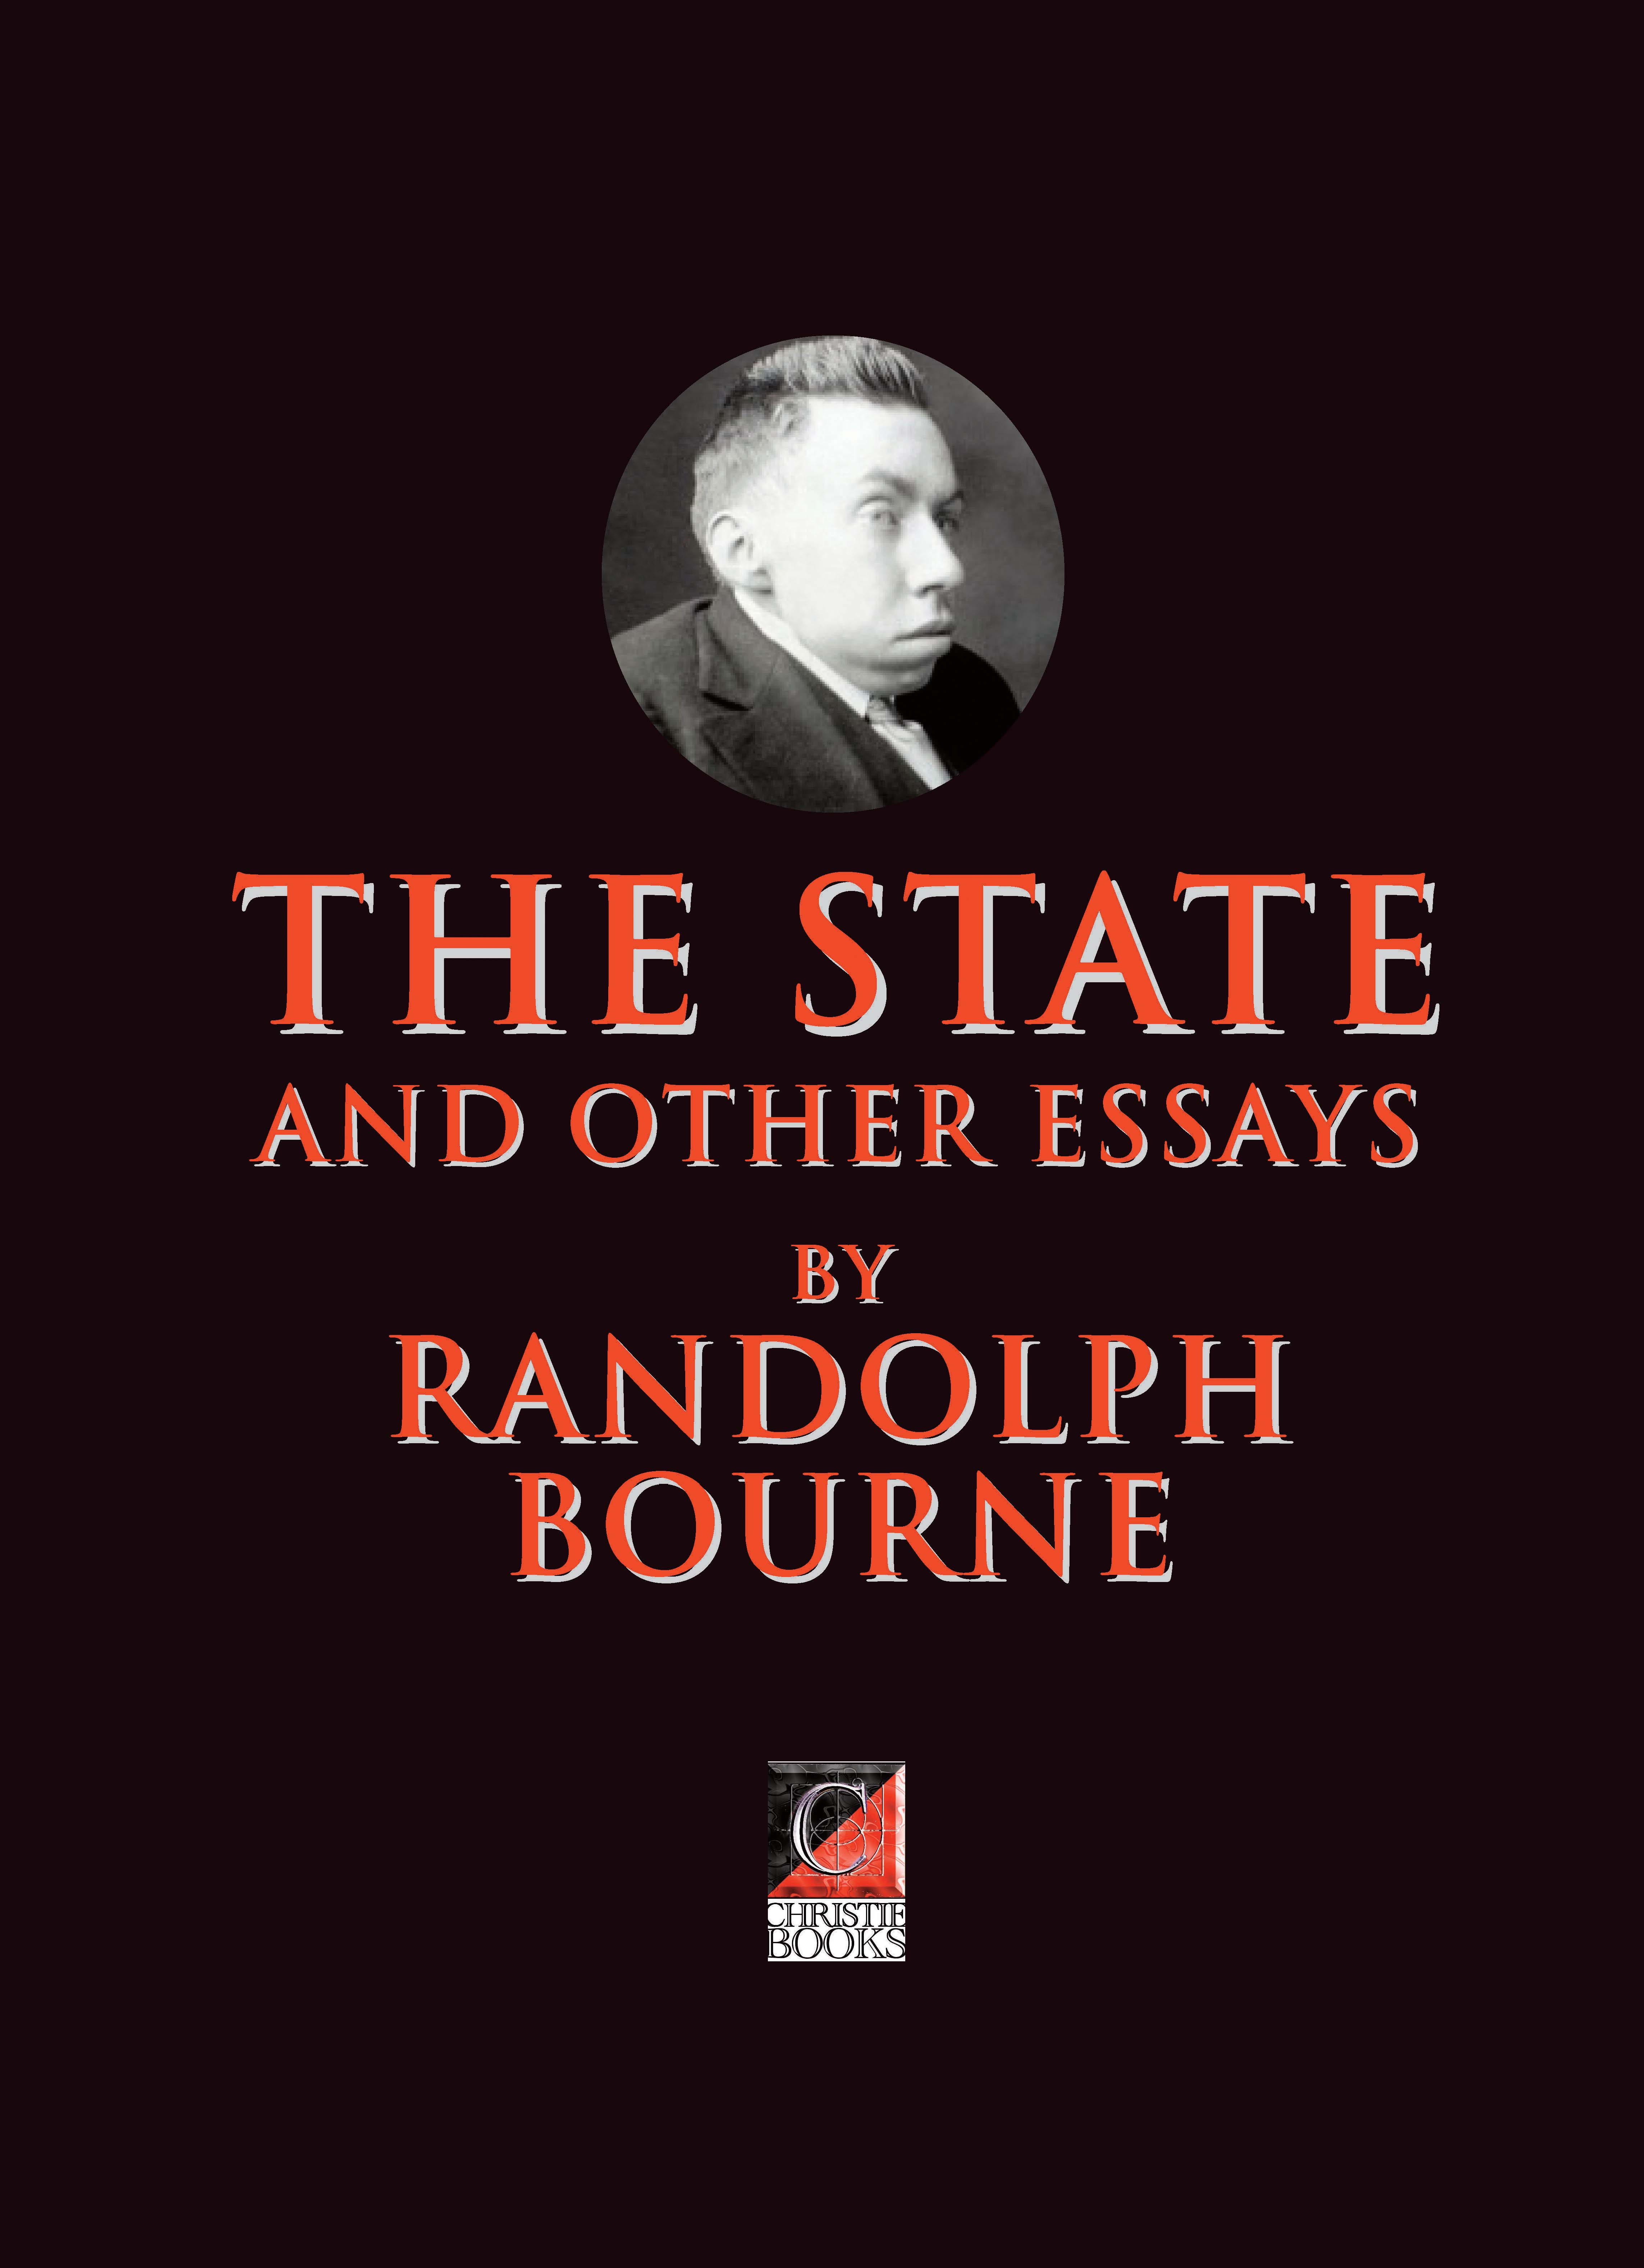 THE STATE AND OTHER ESSAYS